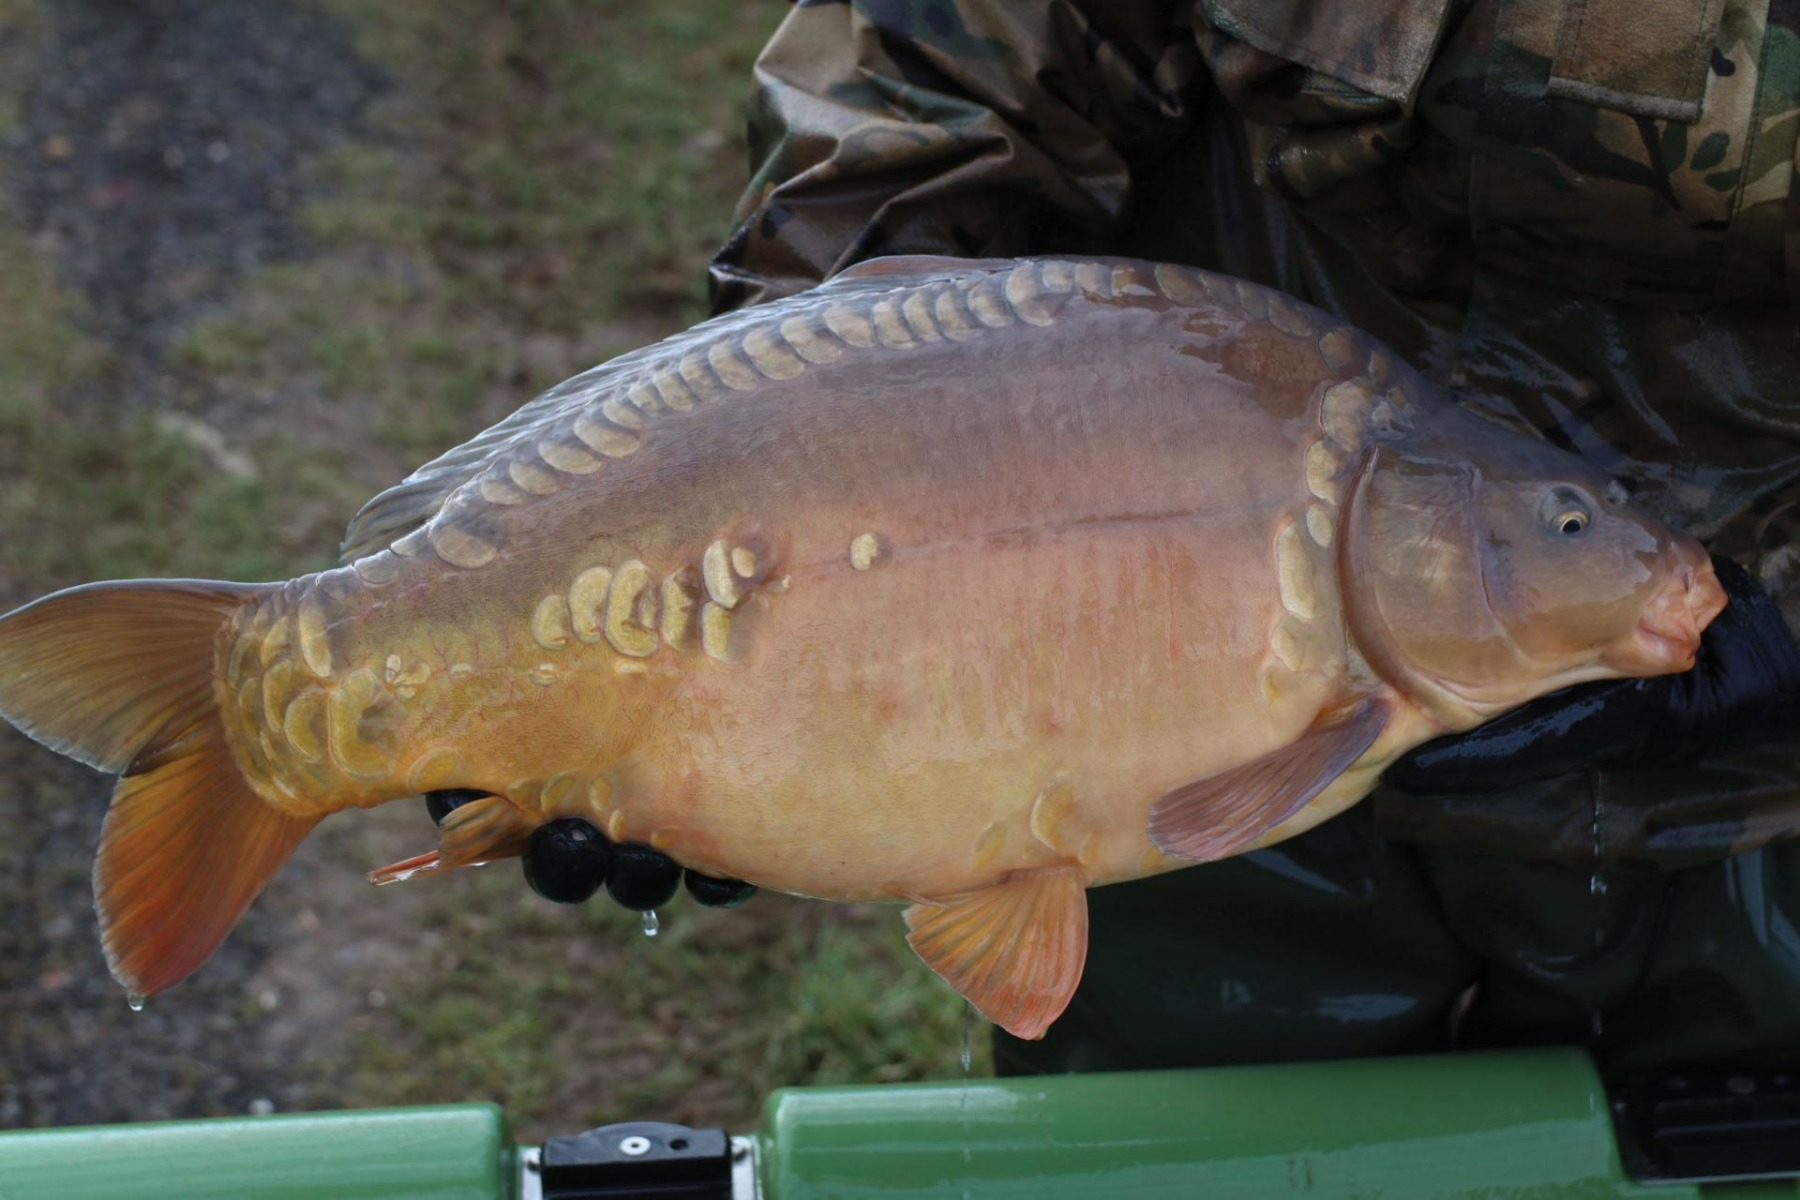 A super stunning, chunky Dink strain